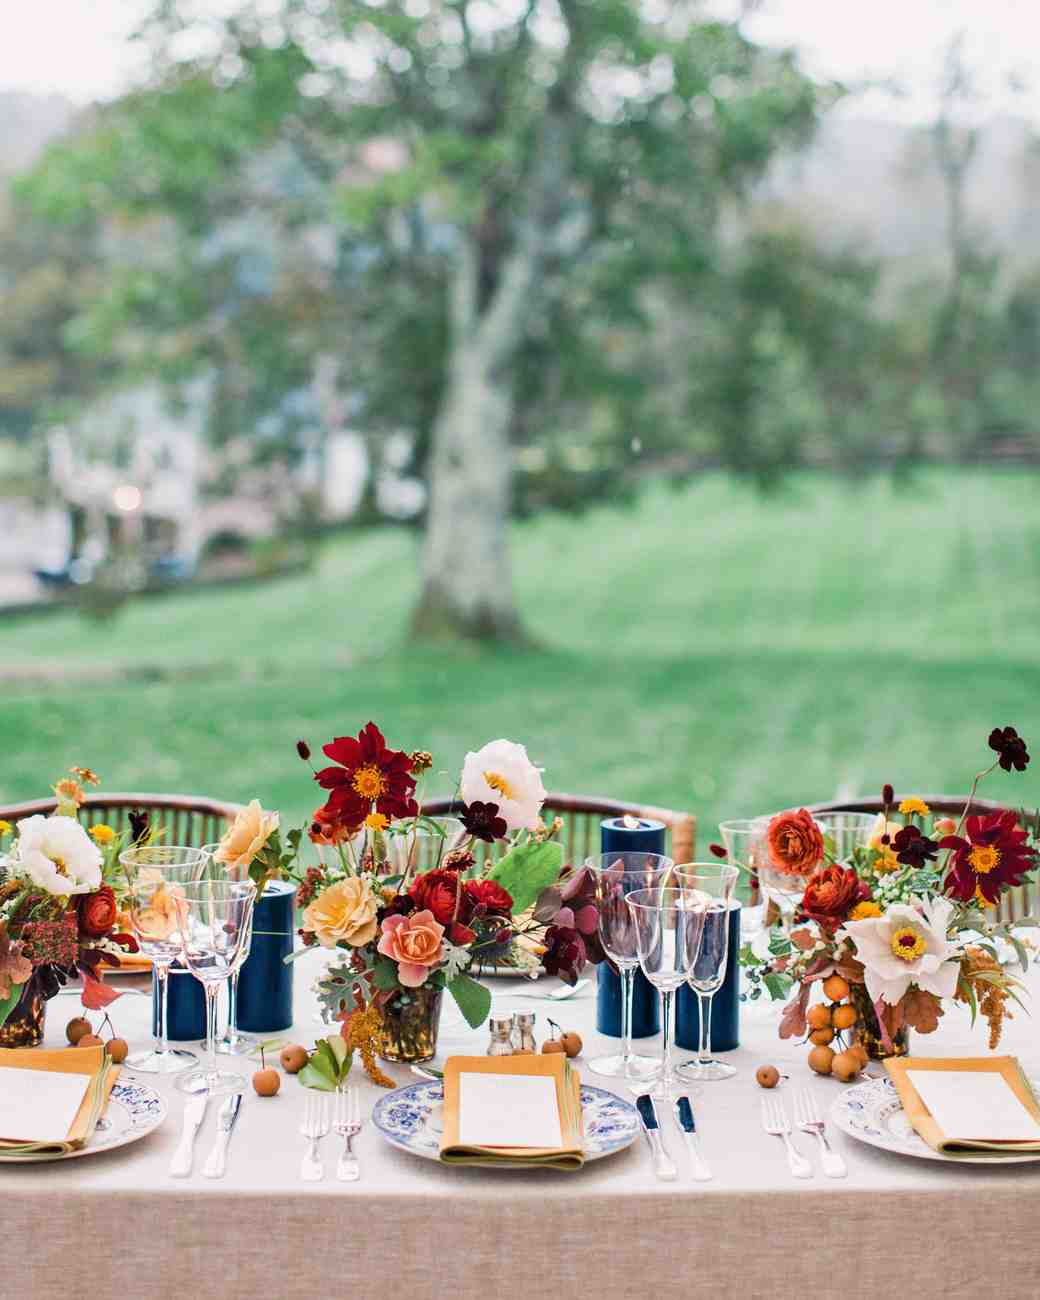 Fall Wedding Ideas Table Decorations: 84 Candle Centerpieces That Will Light Up Your Reception